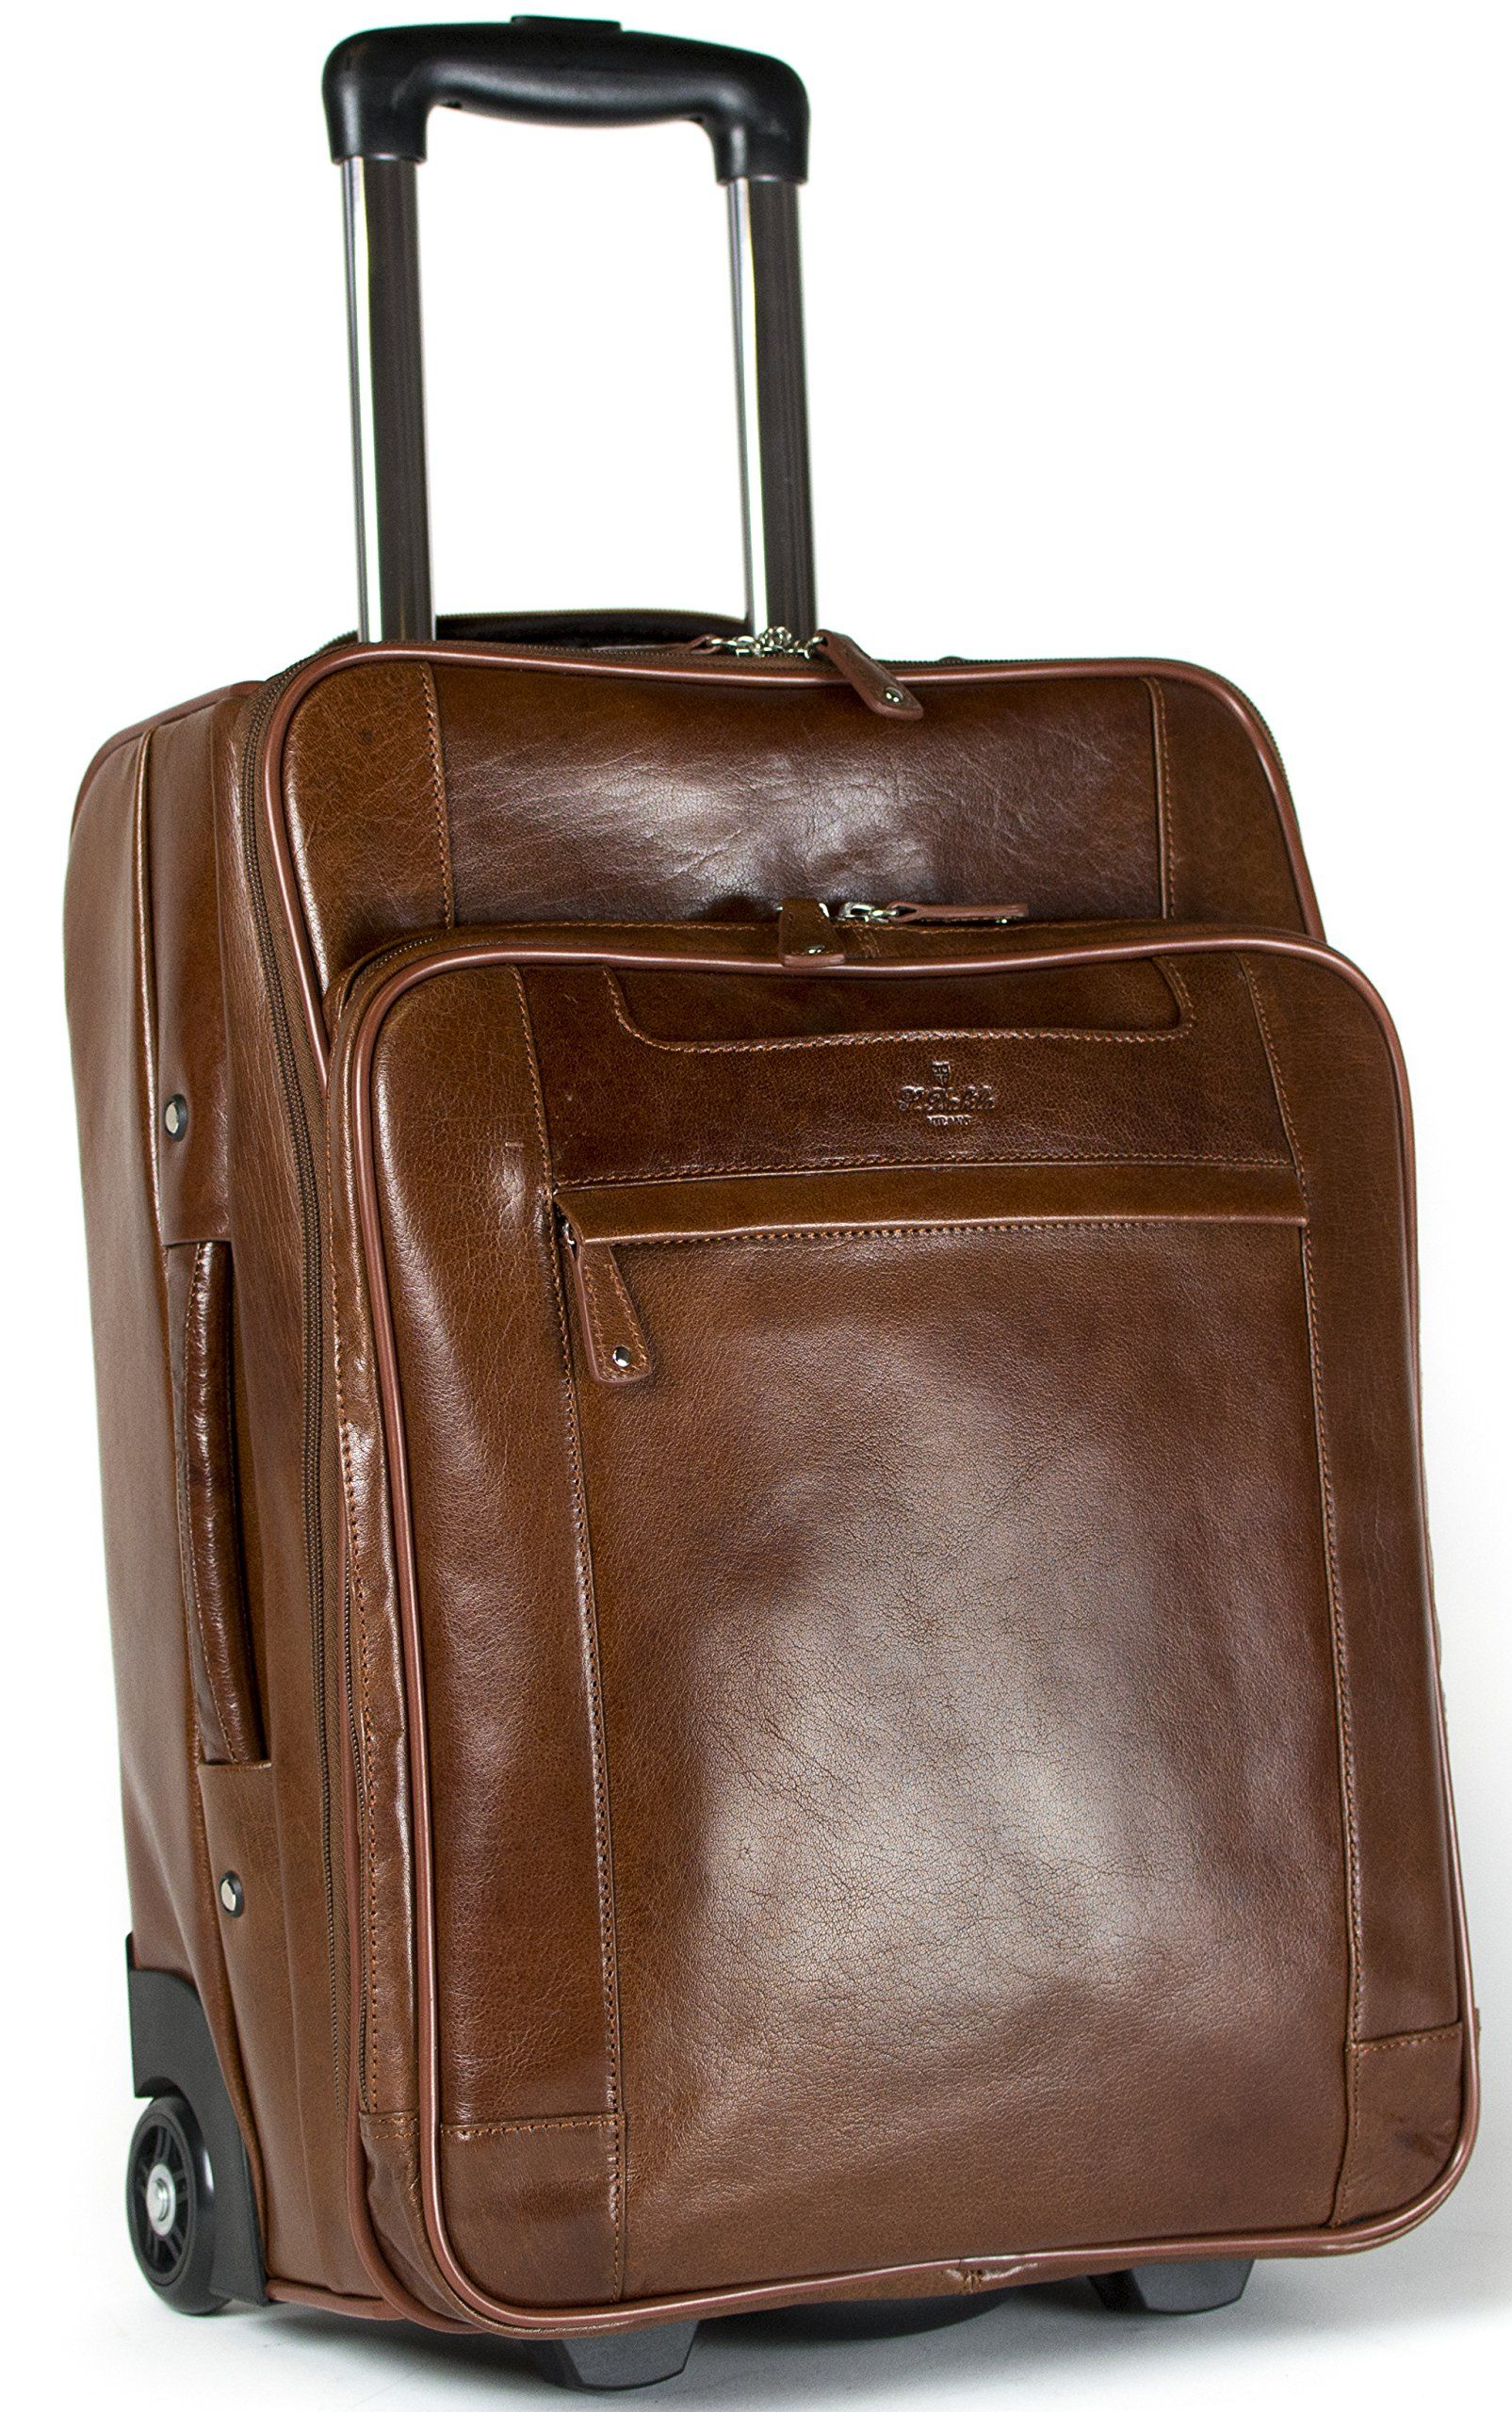 S Babila Leather Laptop Cabin Size Wheeled Hand Luggage